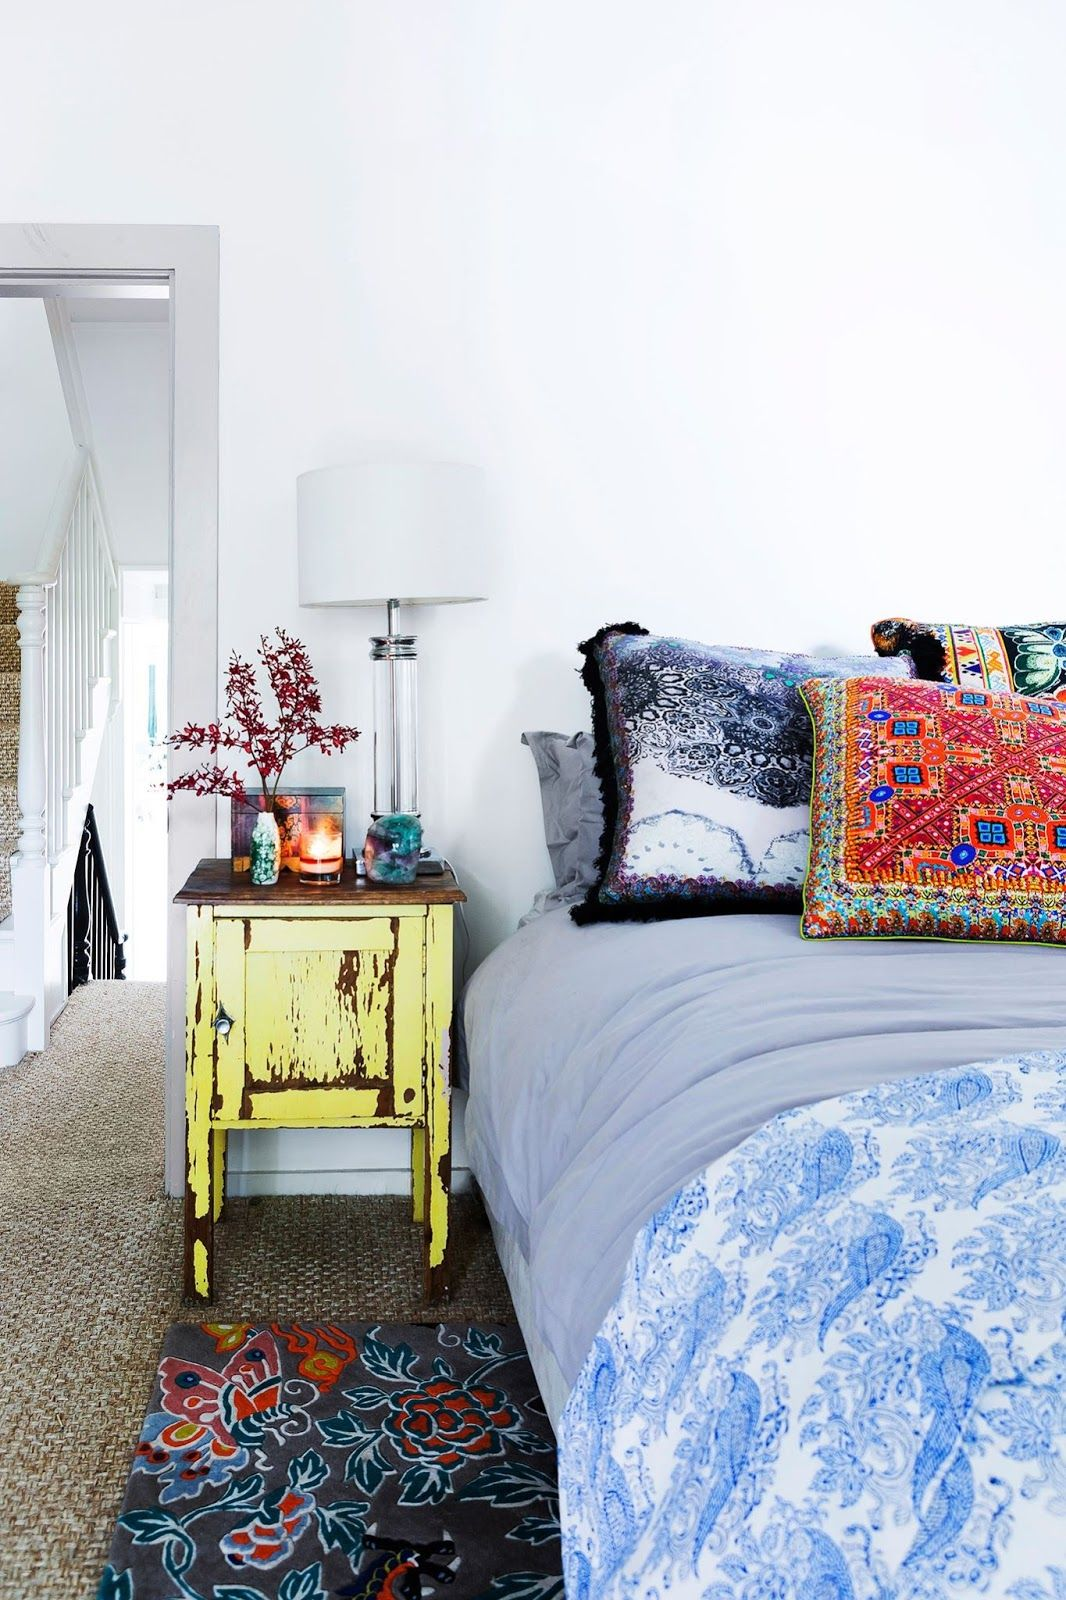 40 Bohemian Bedrooms To Fashion Your Eclectic Tastes After on Boho Bedroom Decor  id=84334